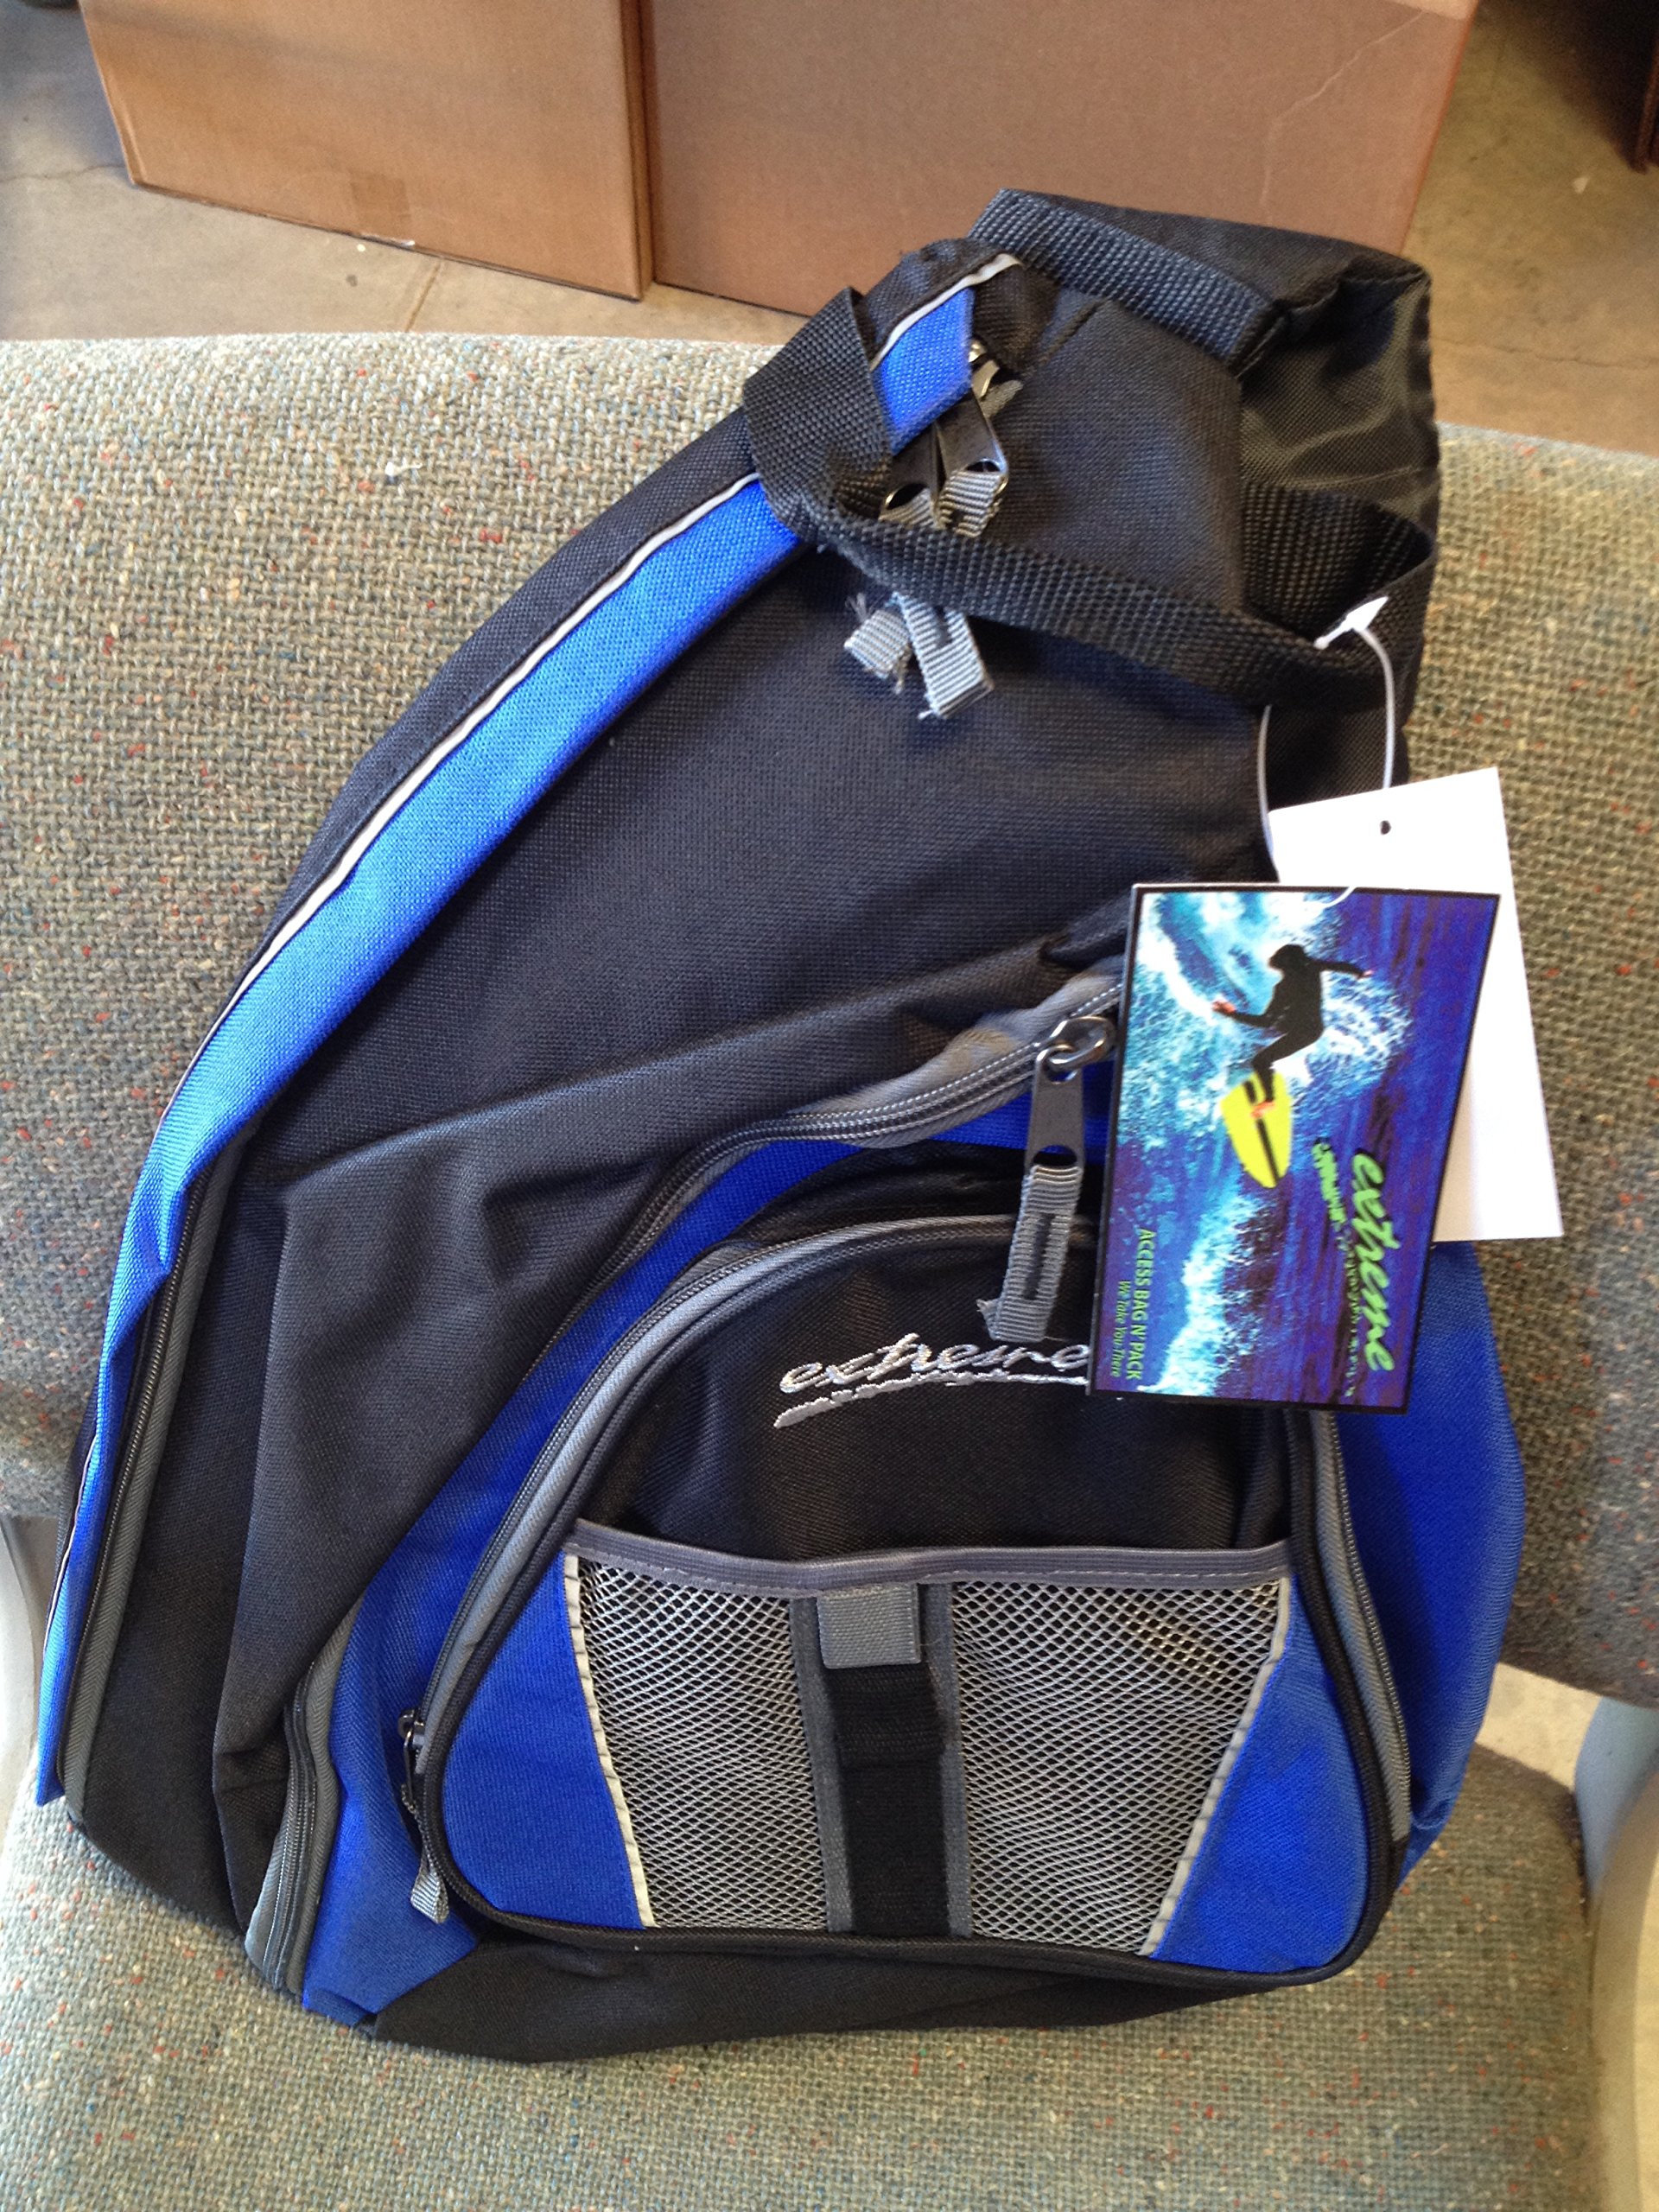 ACCESS EXTREME CROSS OVER STRAP BACKPACK #90212 Blue/Black/Grey